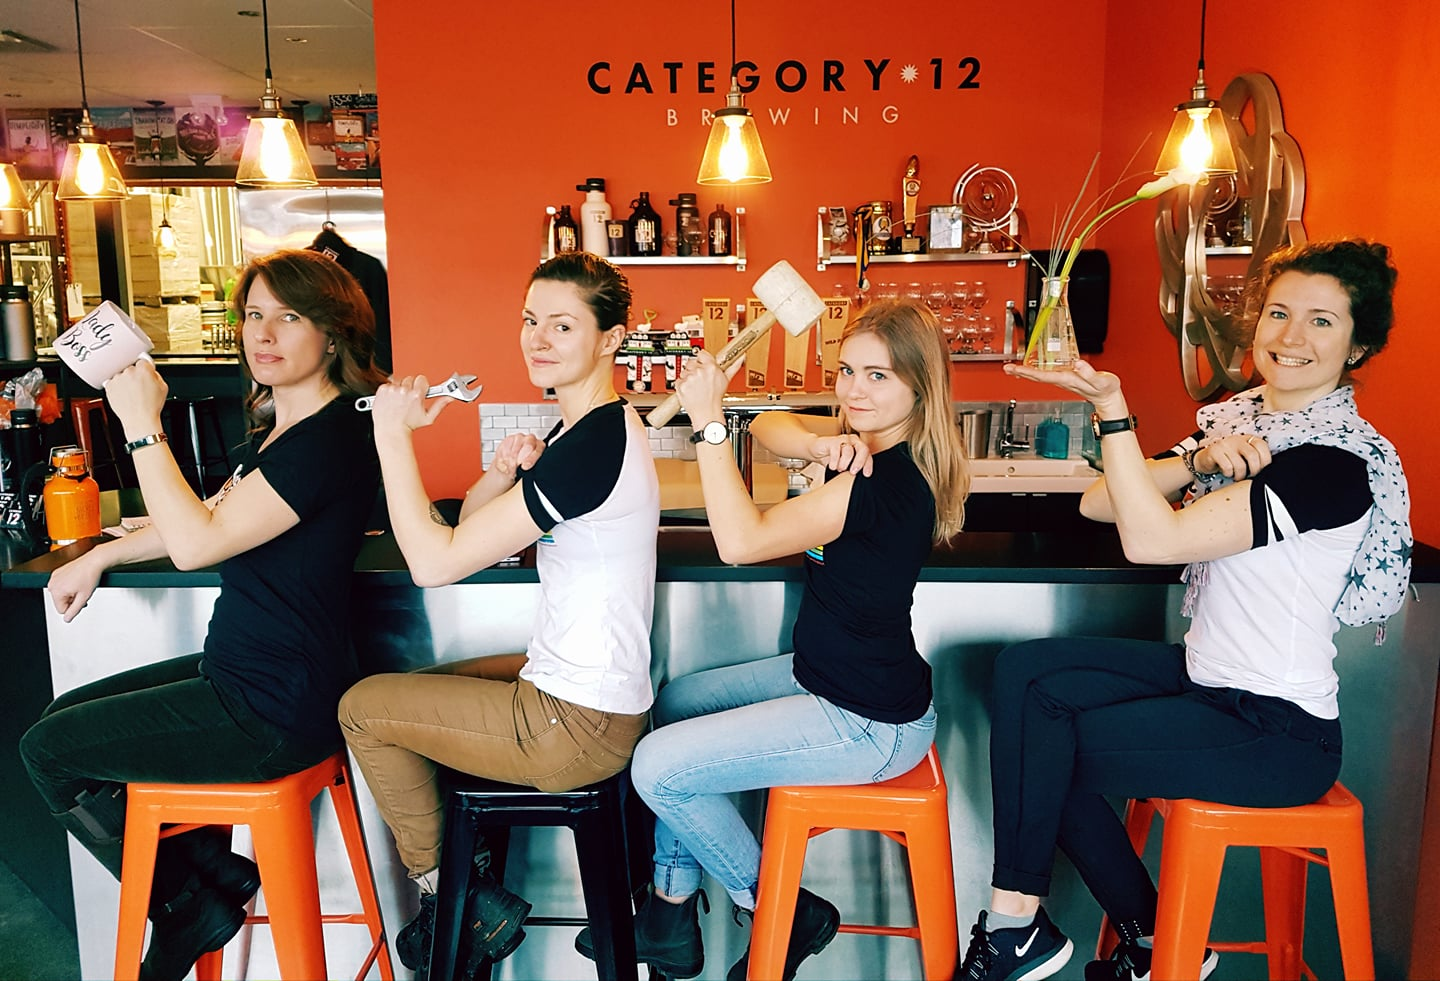 The Ladies Of Category 12